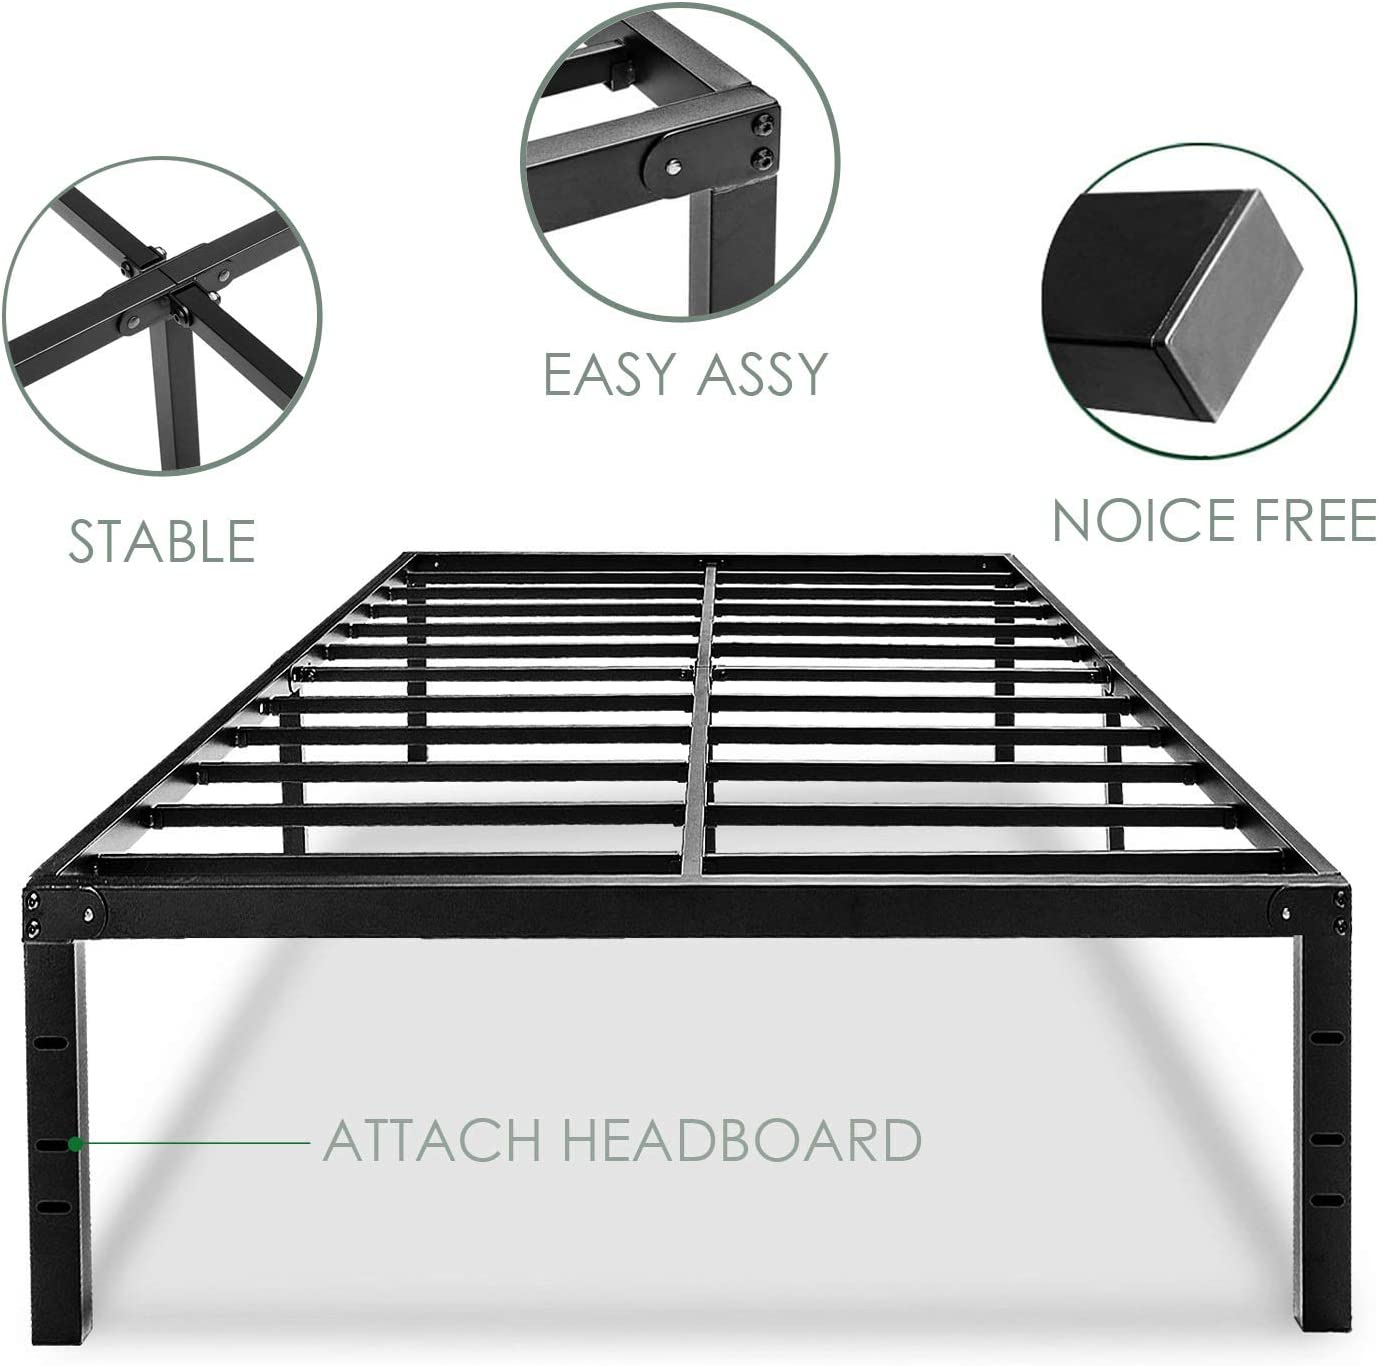 Ess Vertical Wall Bed Building Metal Frames Single Size Mattress Home Bedroom